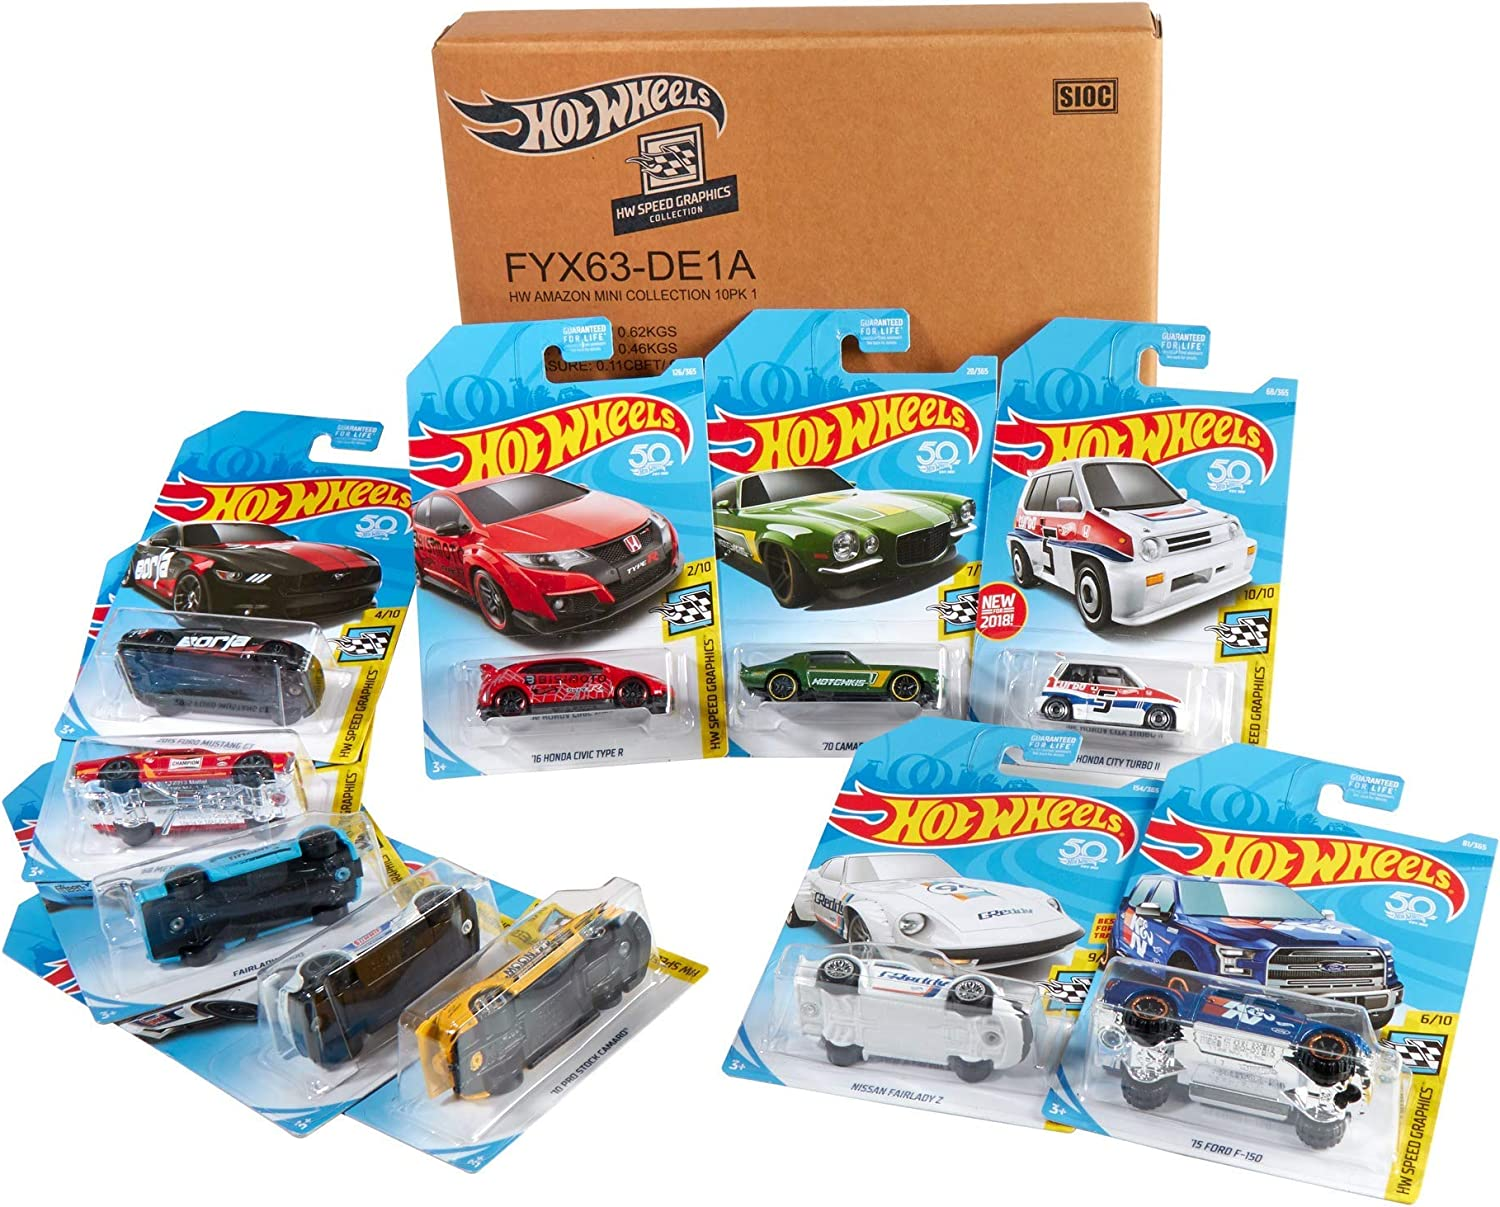 Hot Wheels - Coches, Surtido de 10 Vehículos de Hot Wheels, 1 Unidad (Exclusivo De Amazon) (Mattel FYX63): Amazon.es: Juguetes y juegos